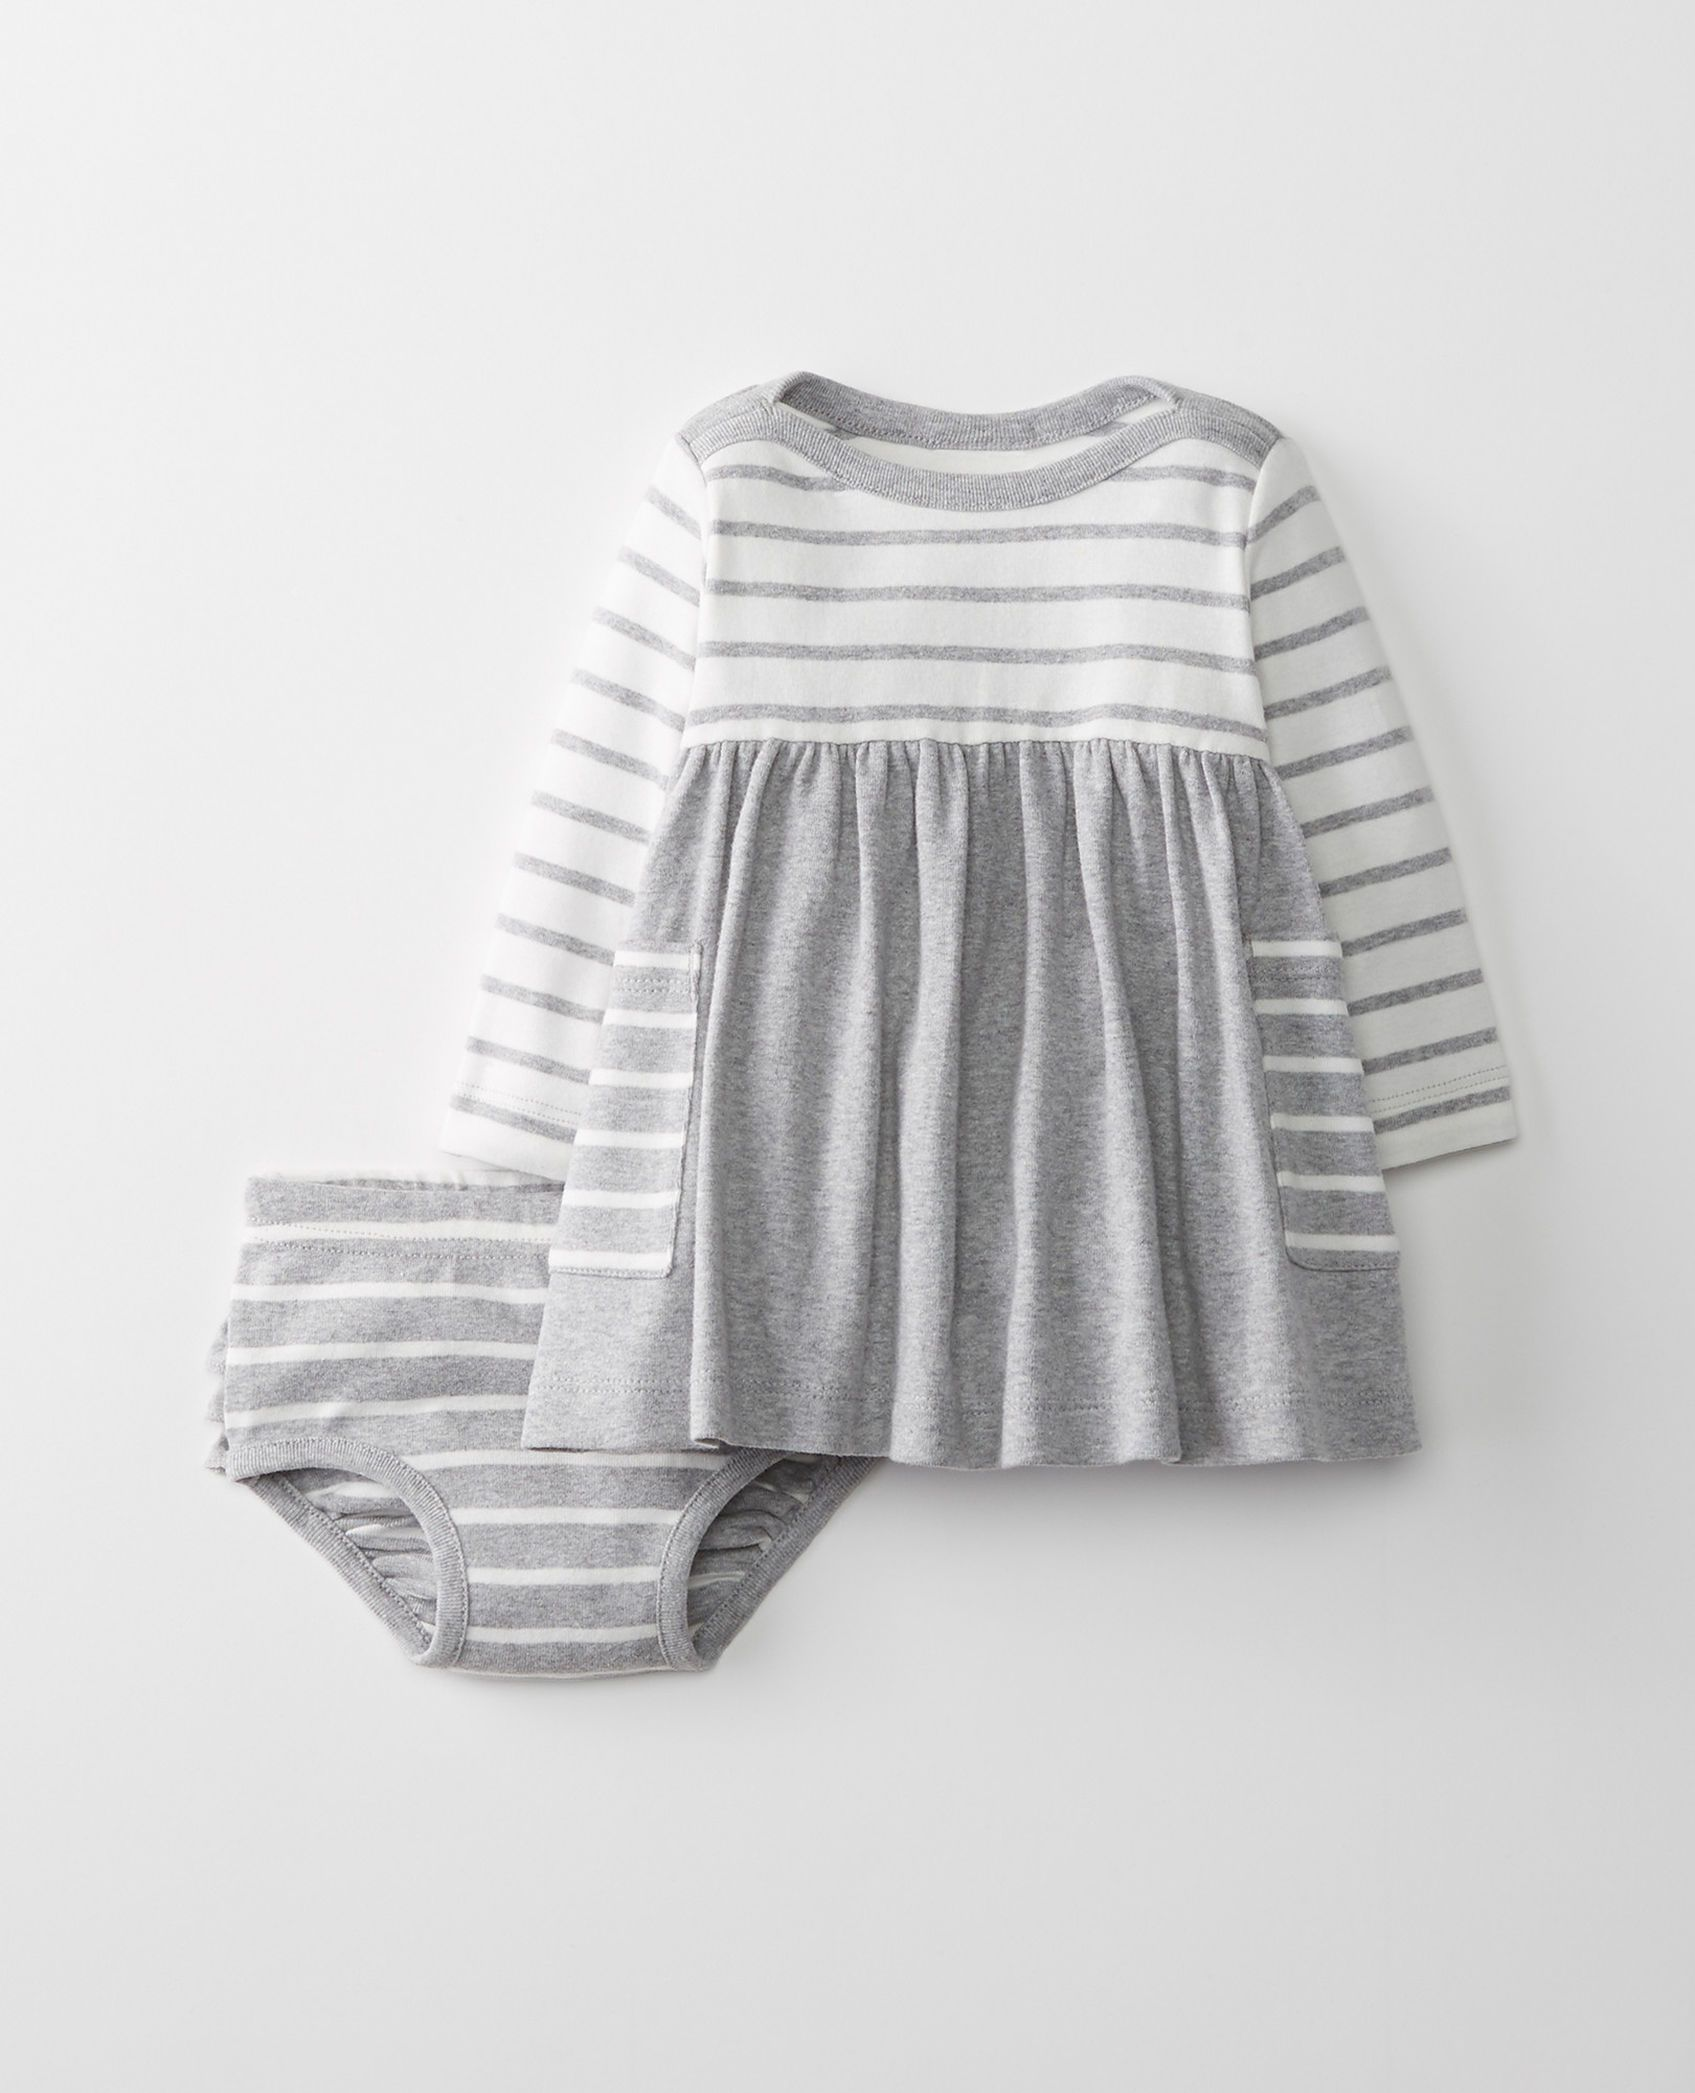 Hanna Andersson Baby//Toddler Bright Basics Dress in Organic Cotton